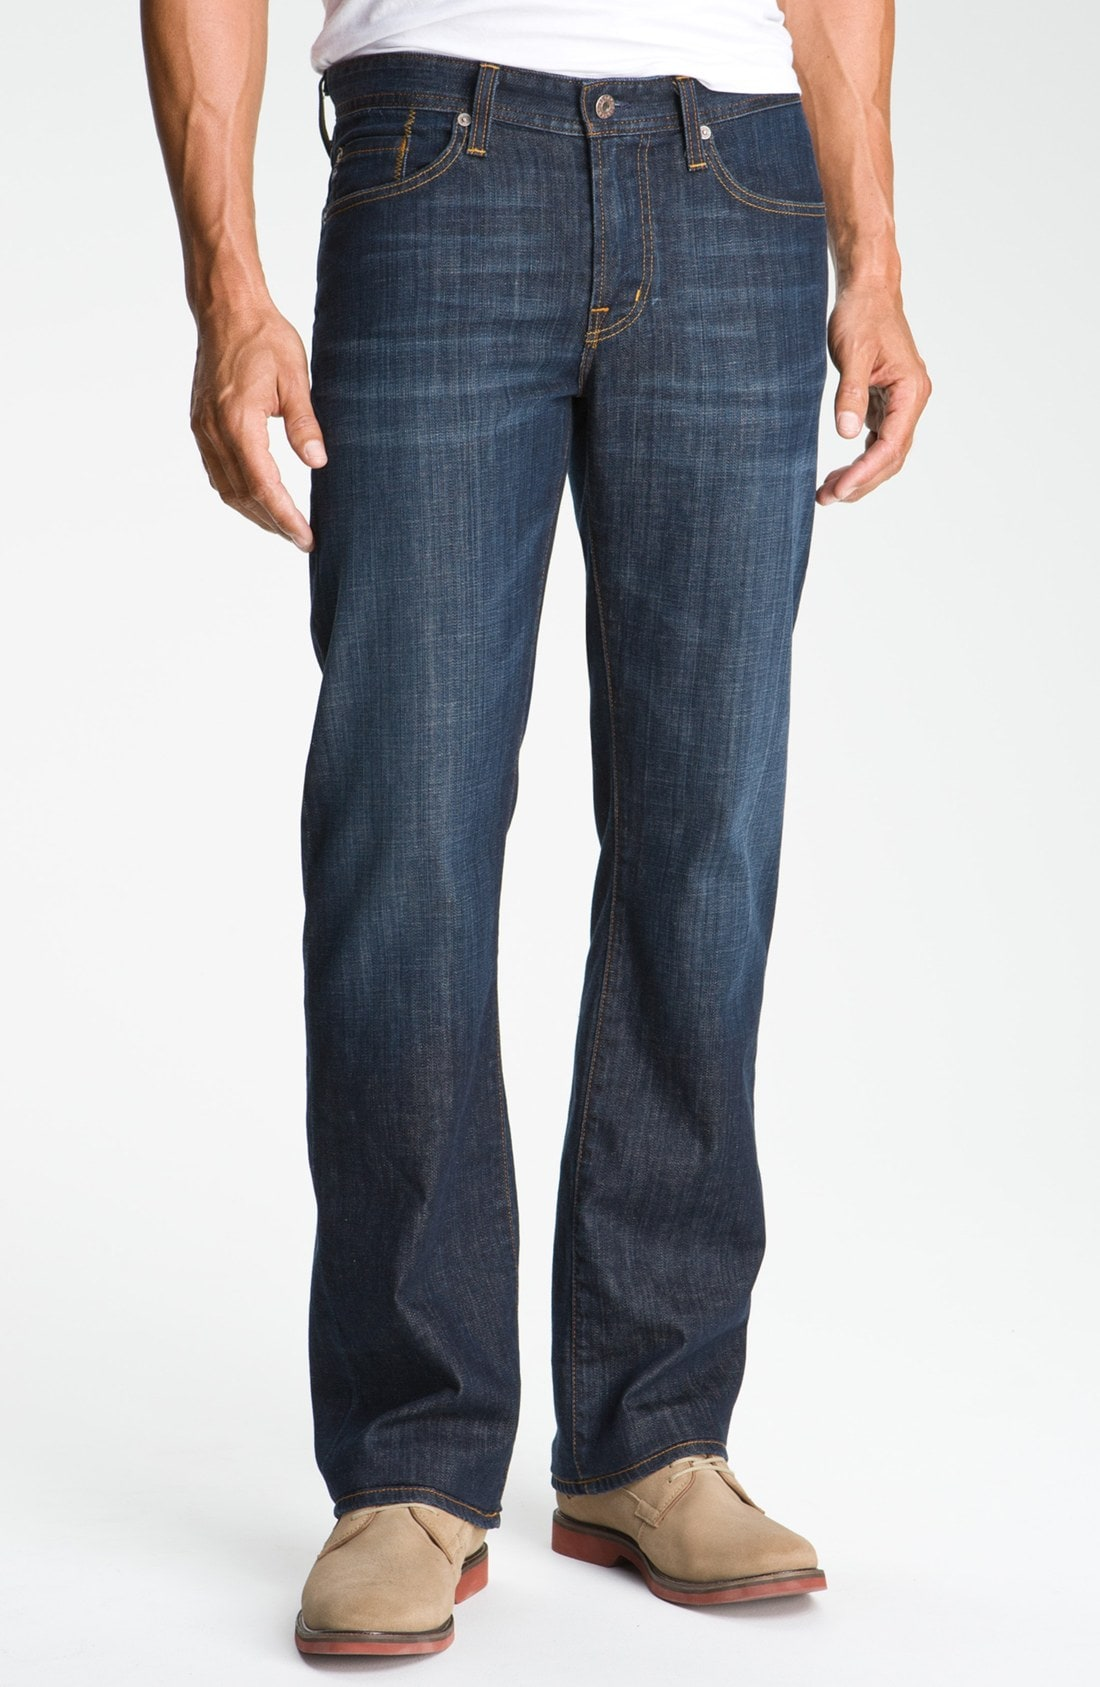 Men's Straight Fit Jeans | Nordstrom